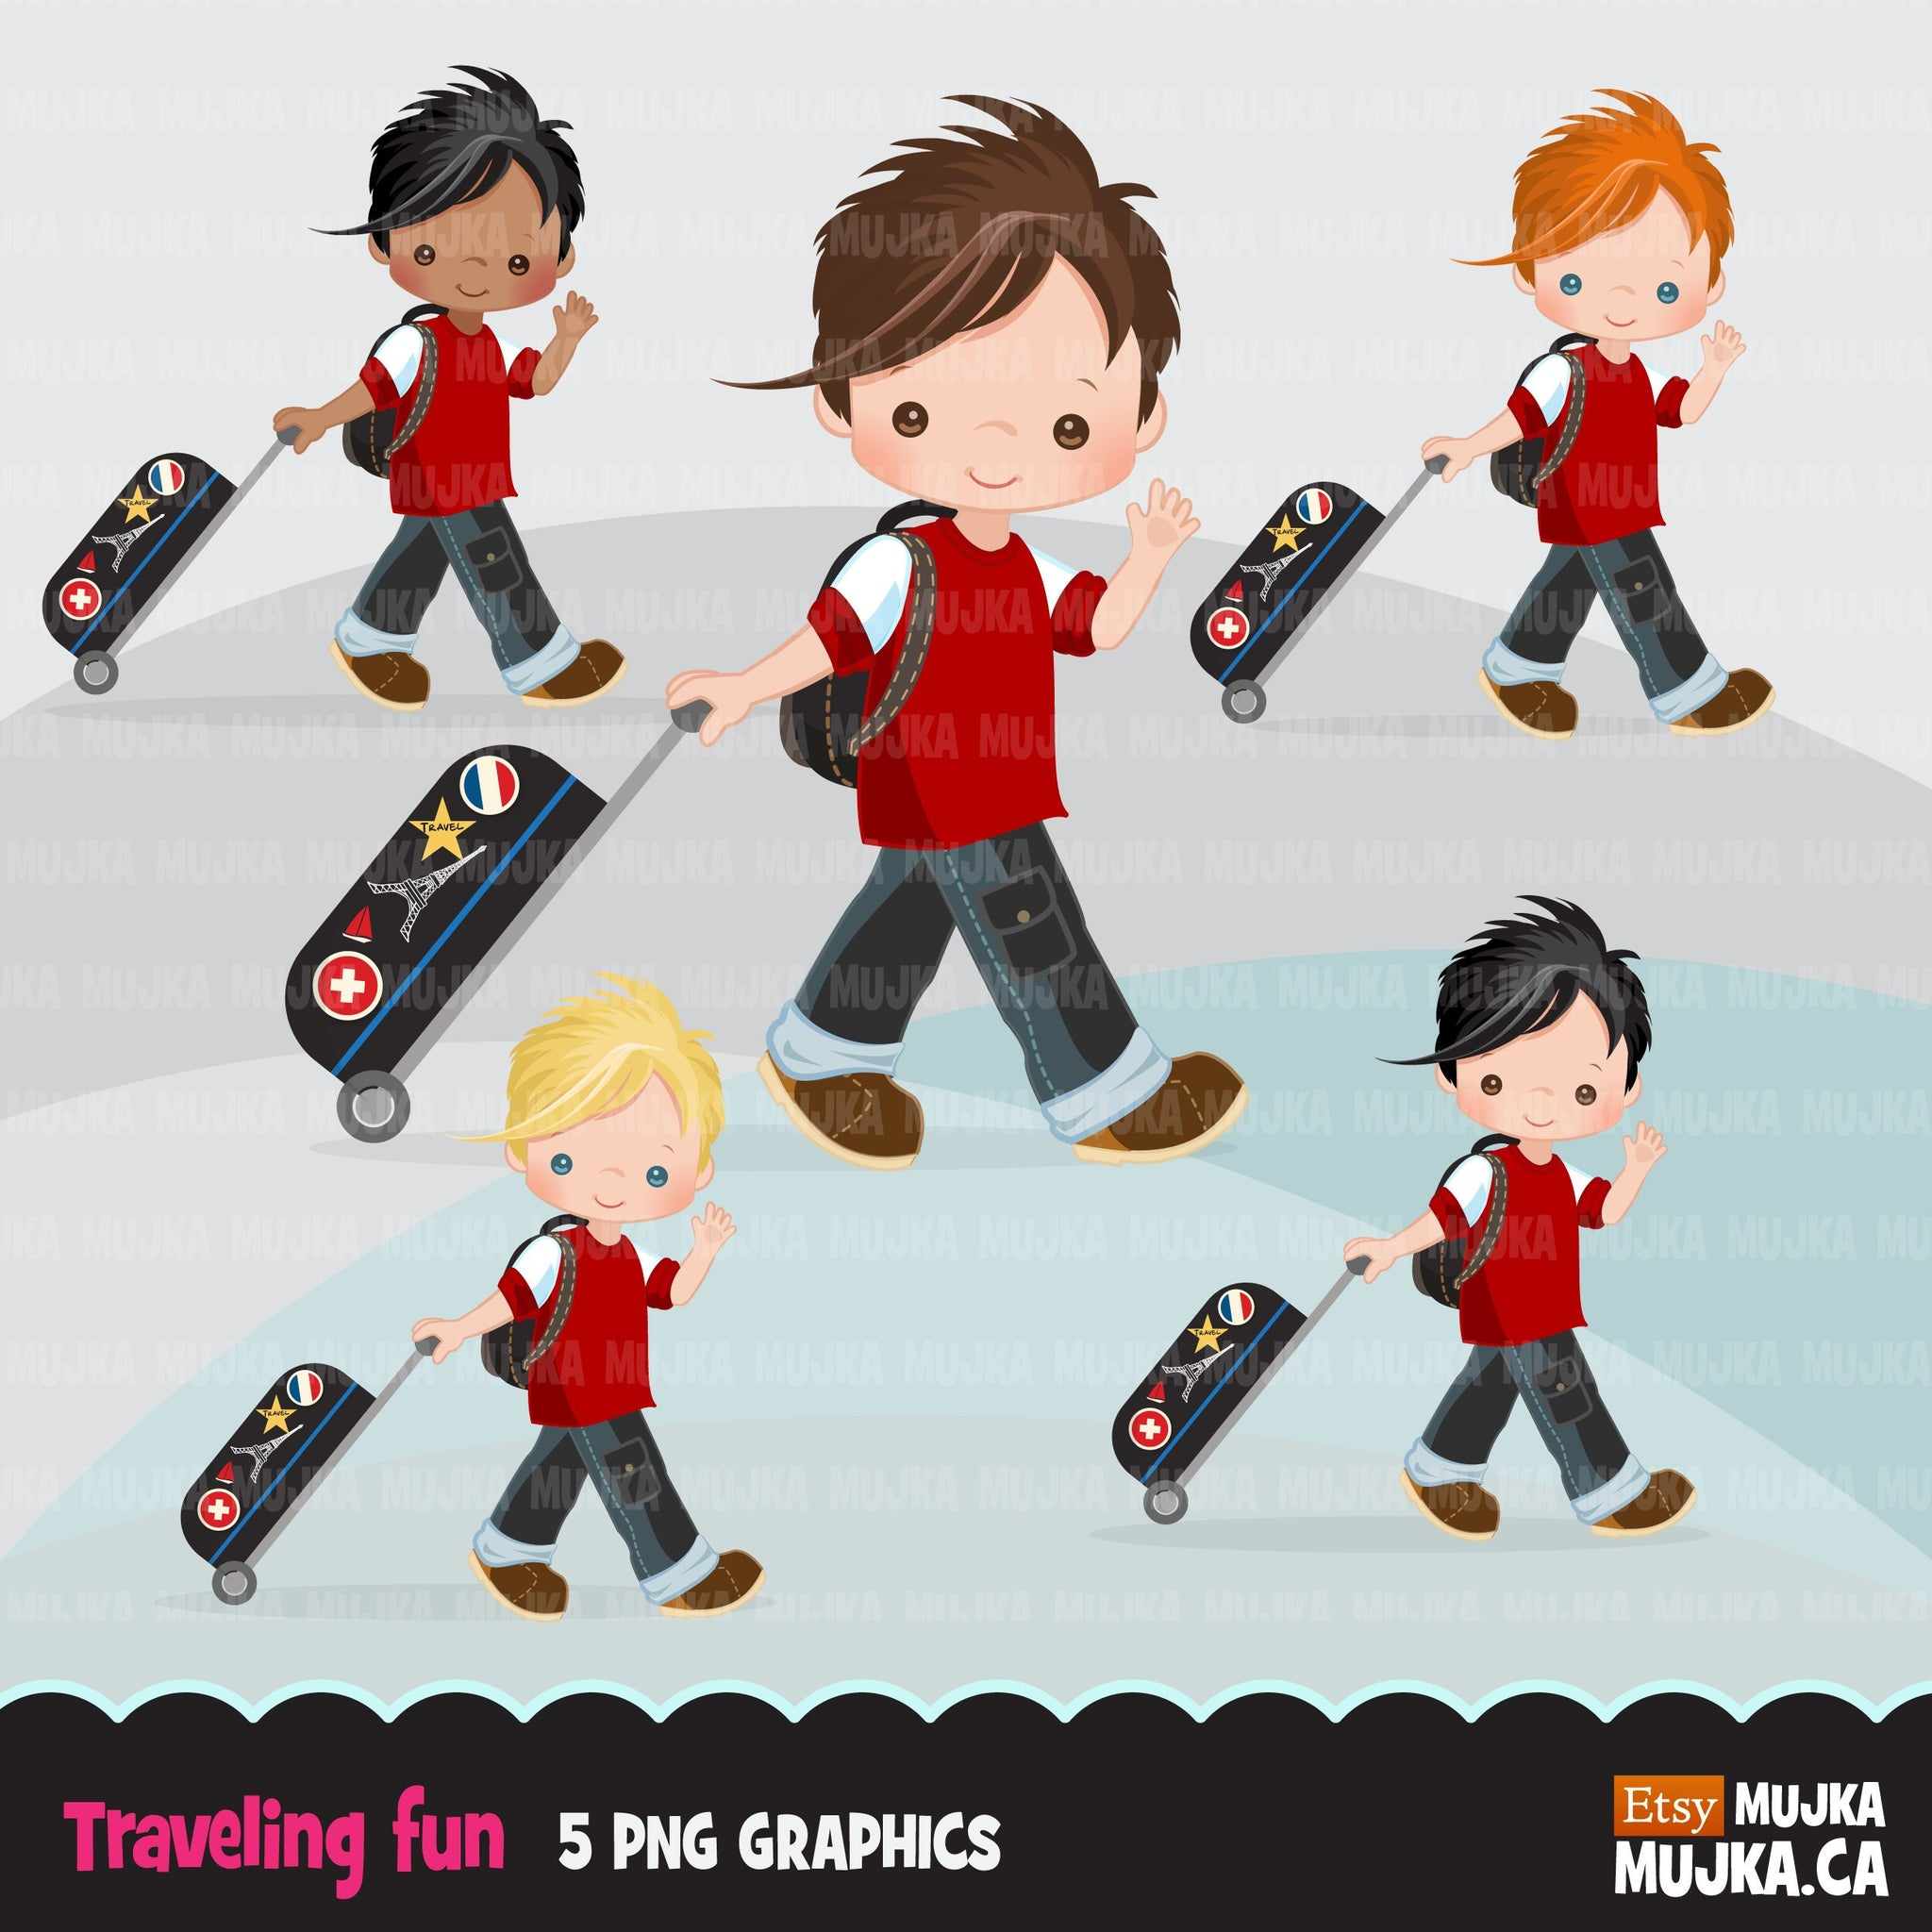 Traveling little boy clipart, Vacation graphics with suitcase and backpack, passport cover graphics, holiday commercial use PNG